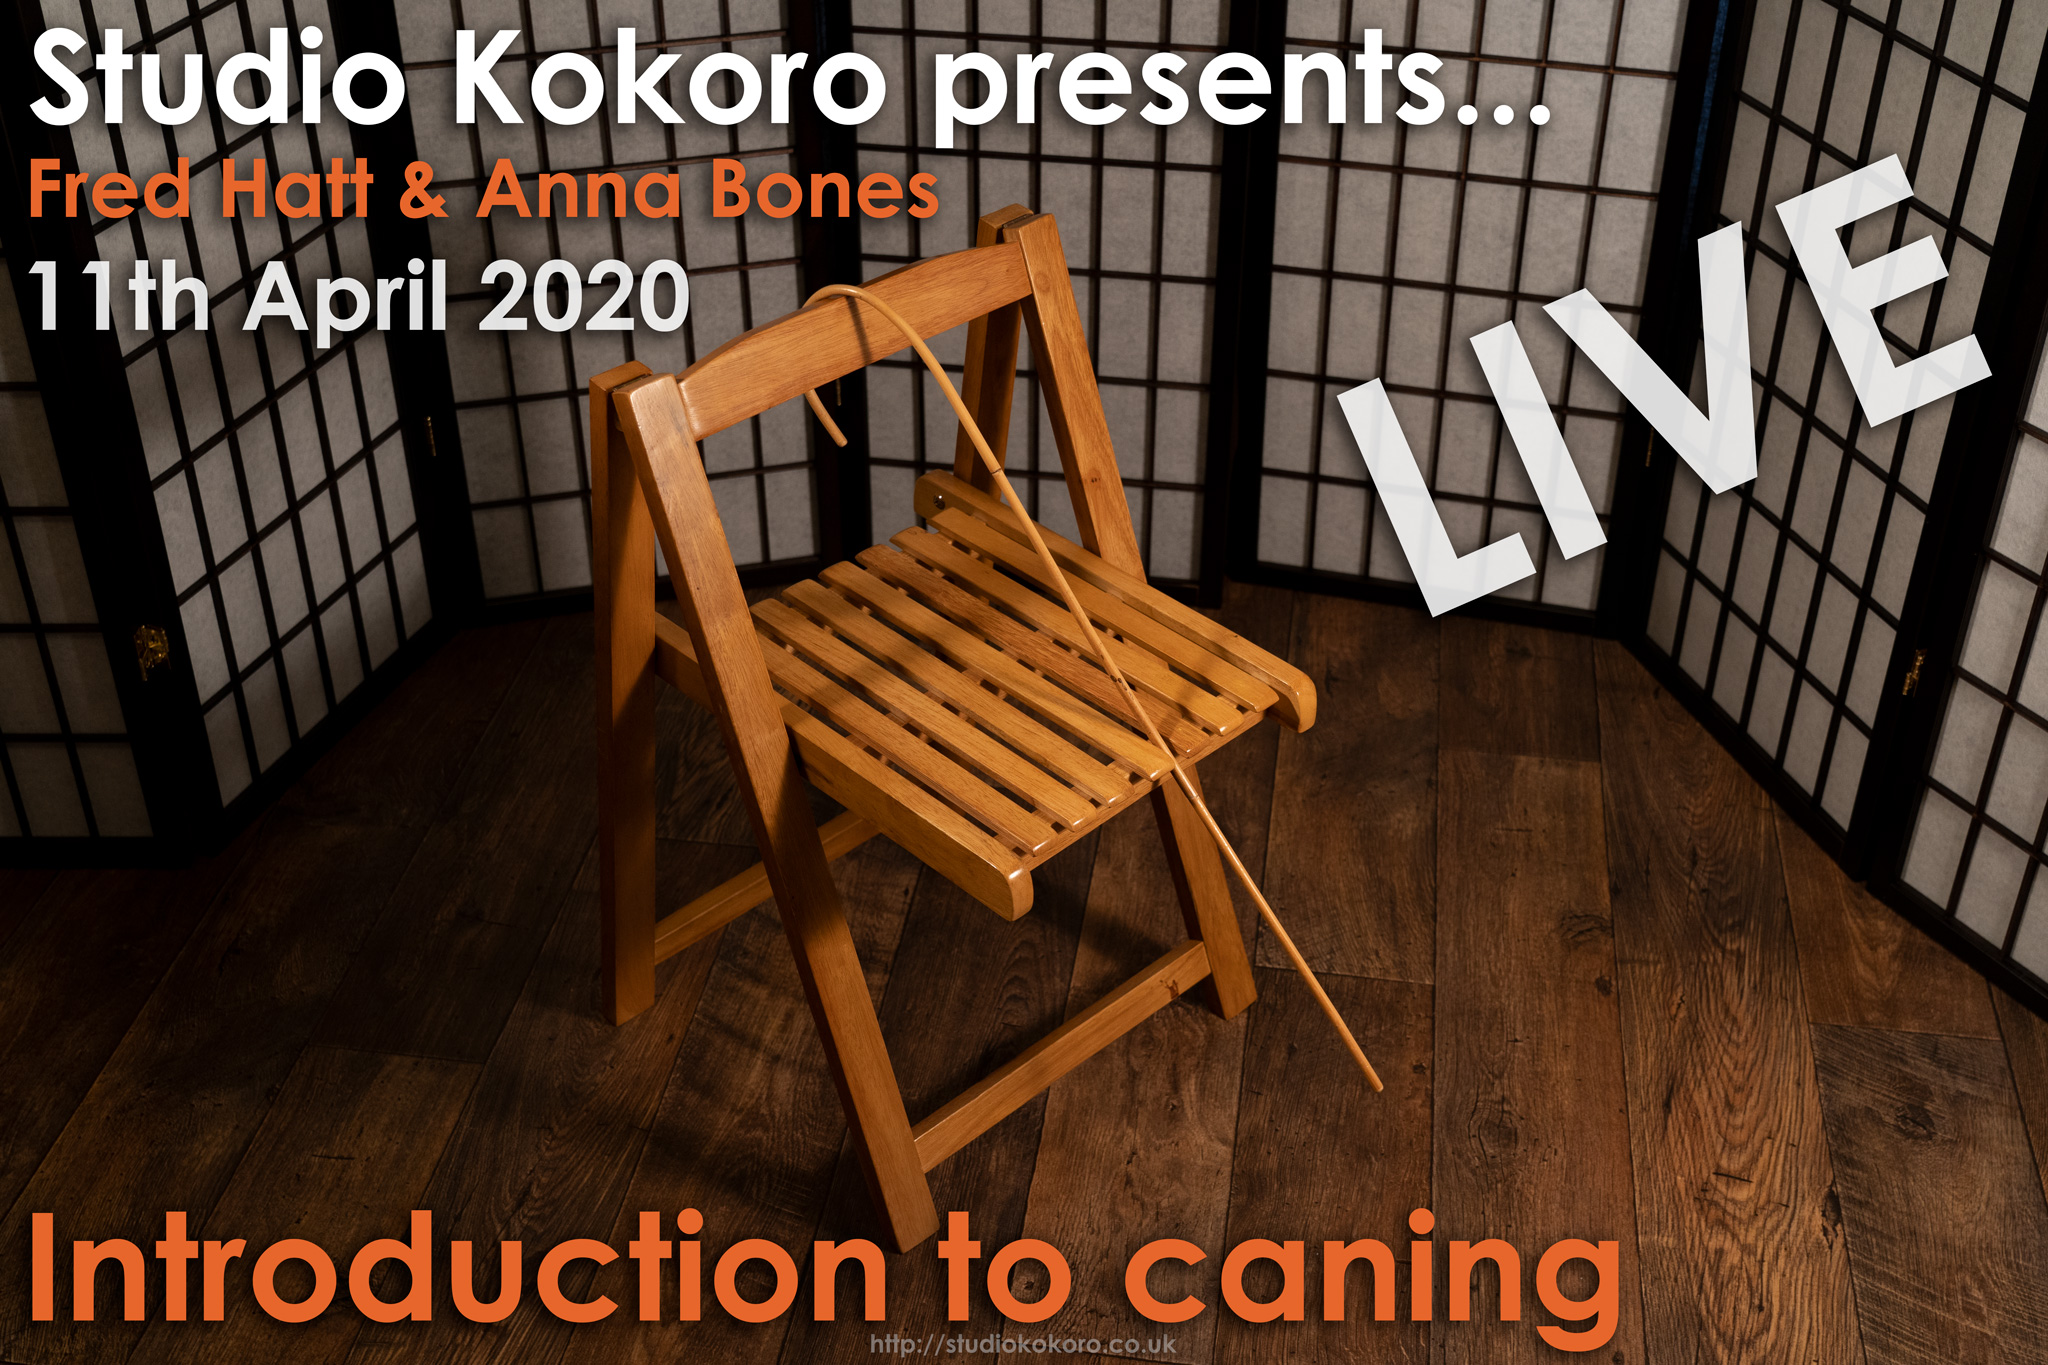 Studio Kokoro present Fred Hatt and Anna Bones Introduction to Caning Live